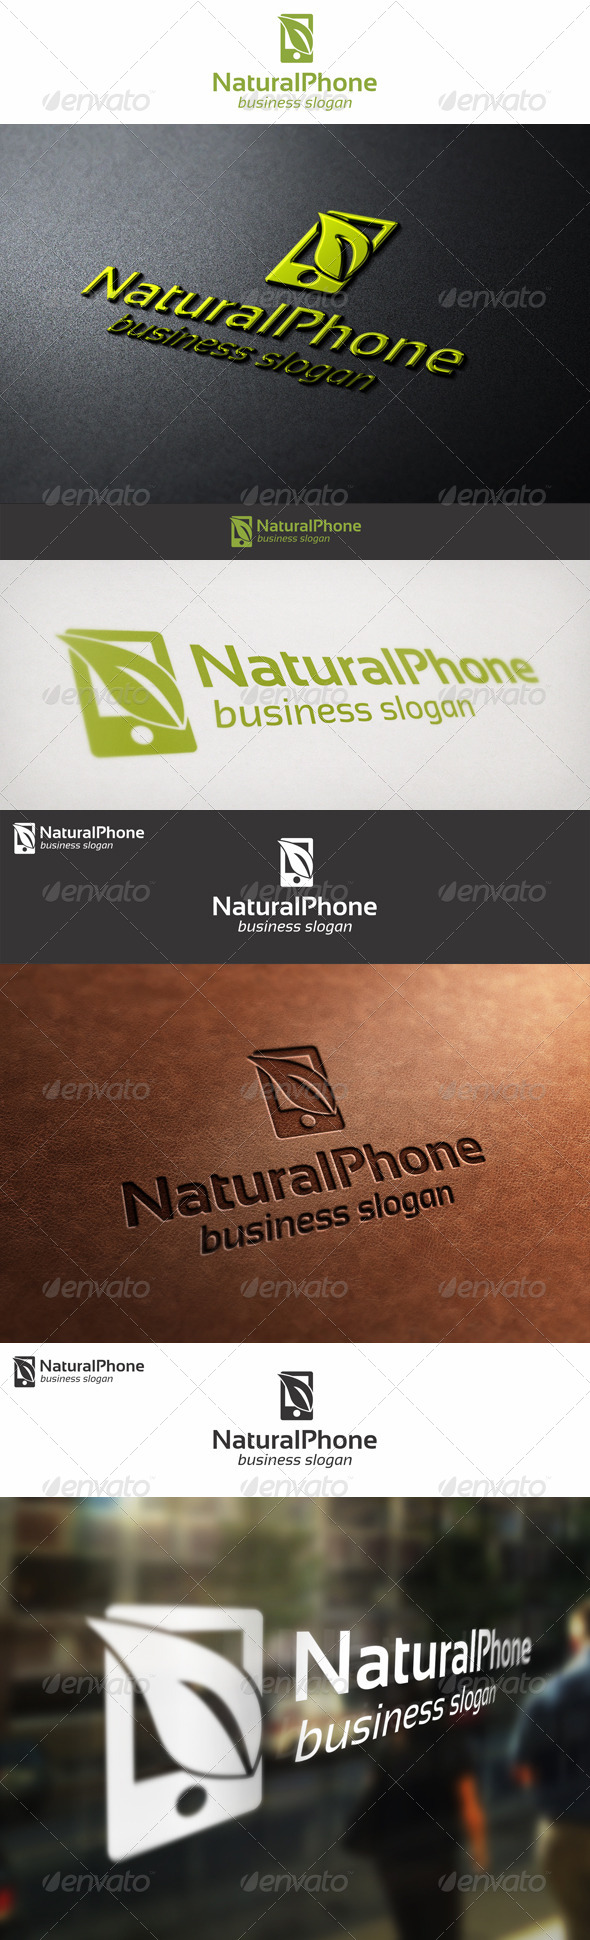 GraphicRiver Natural Phone Eco Mobile Logo 6724840